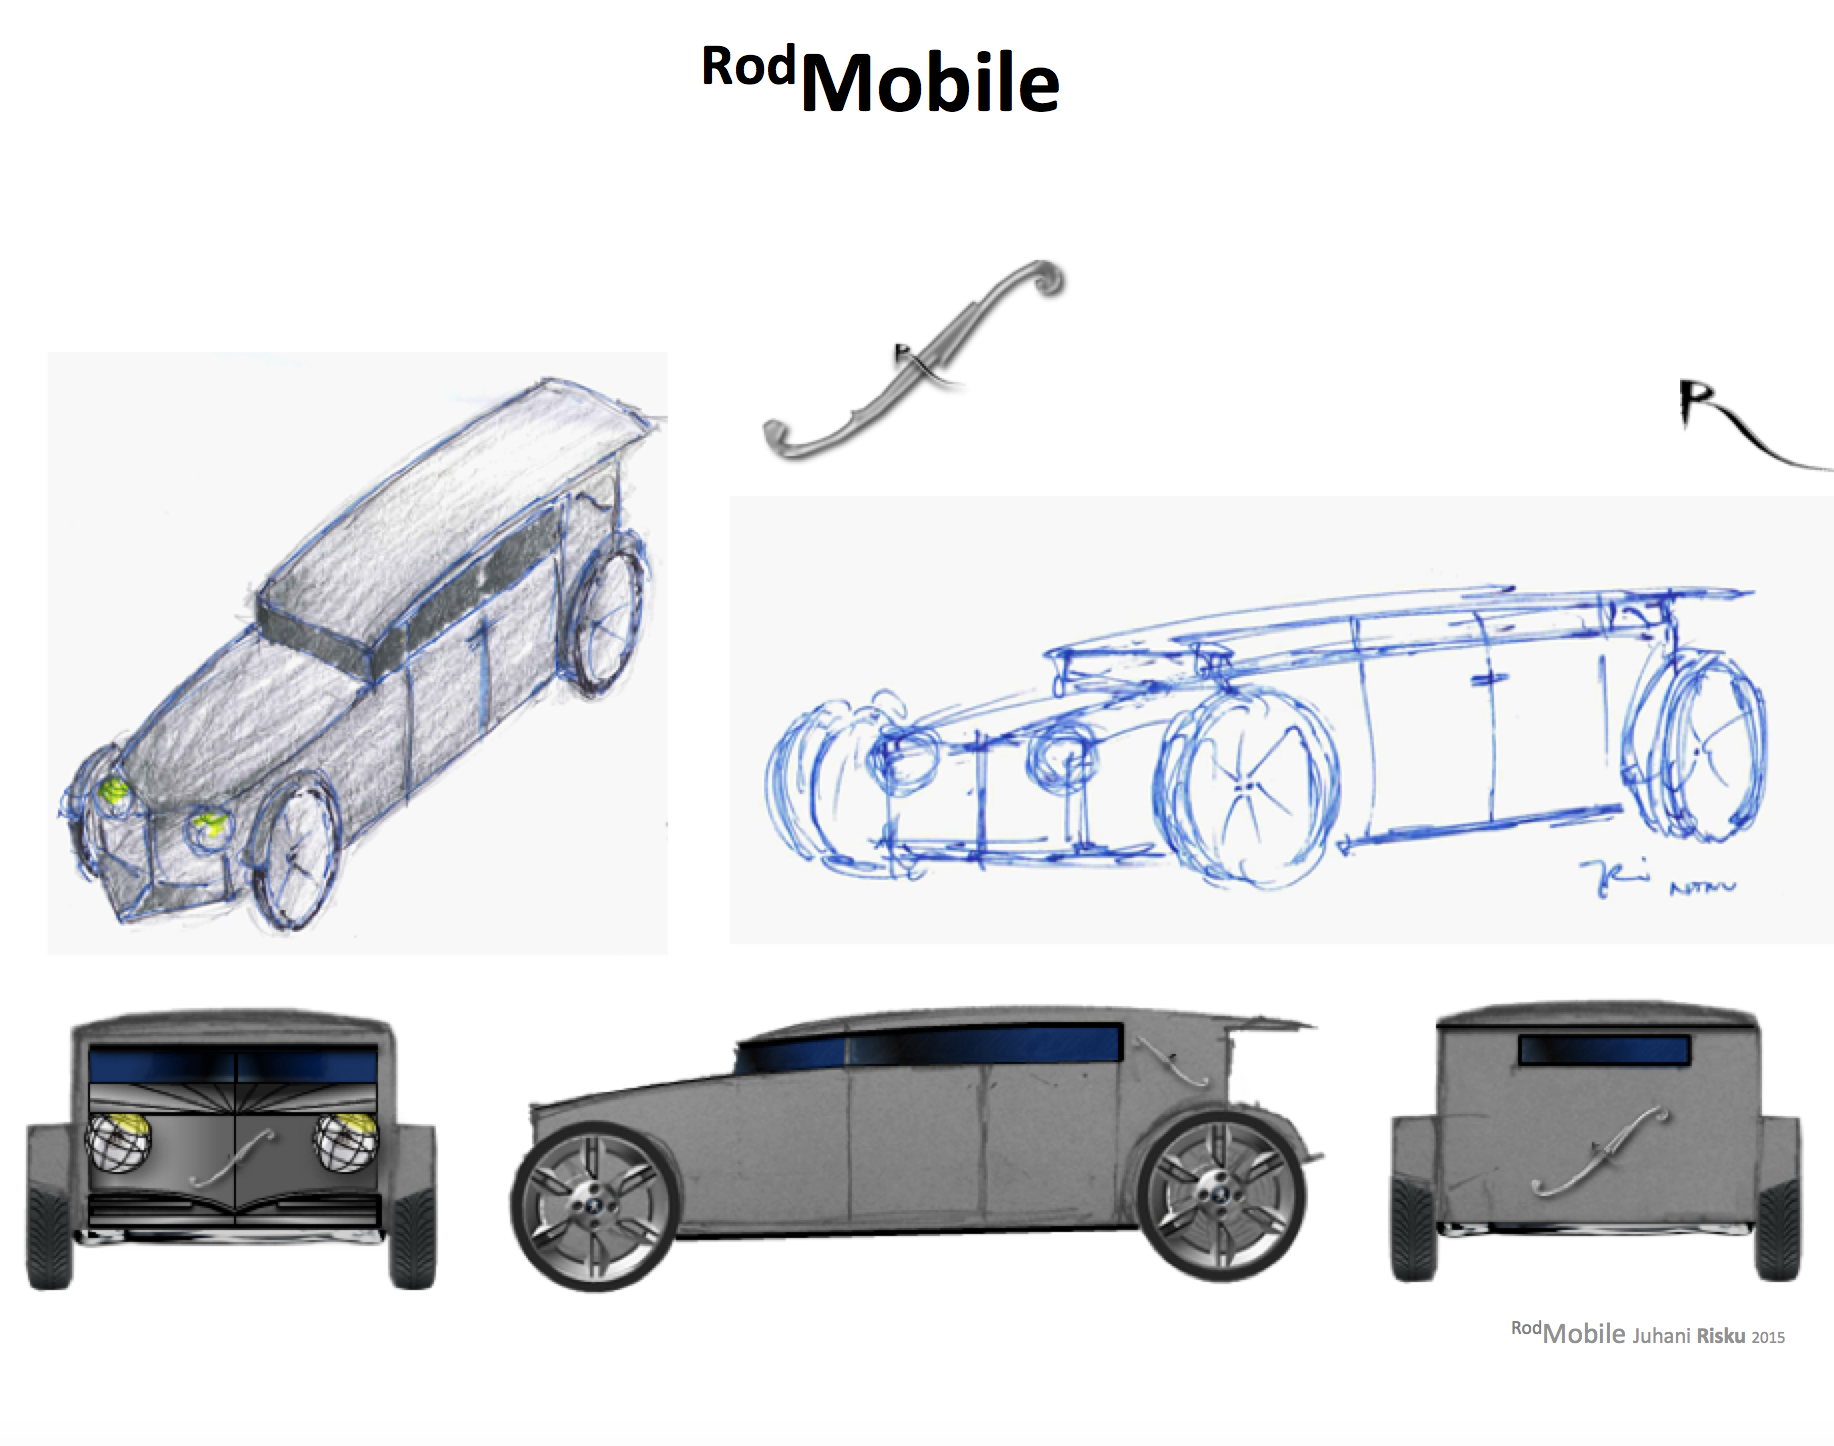 Rodmobile Electric Car Architecture Rock